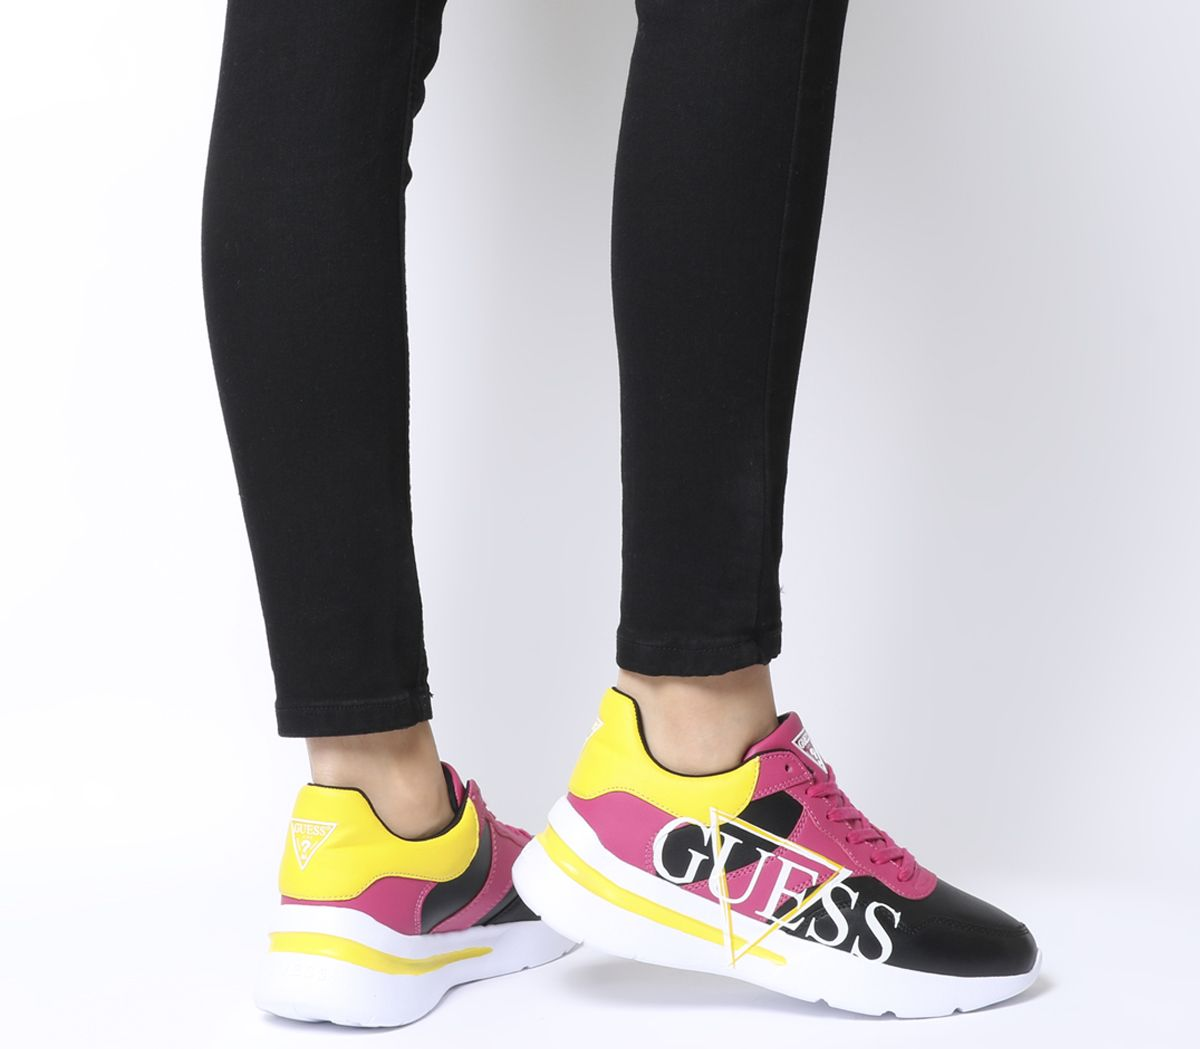 12505e5aaa39 Guess Milez Logo Sneakers Black Red Yellow Multi - Flats